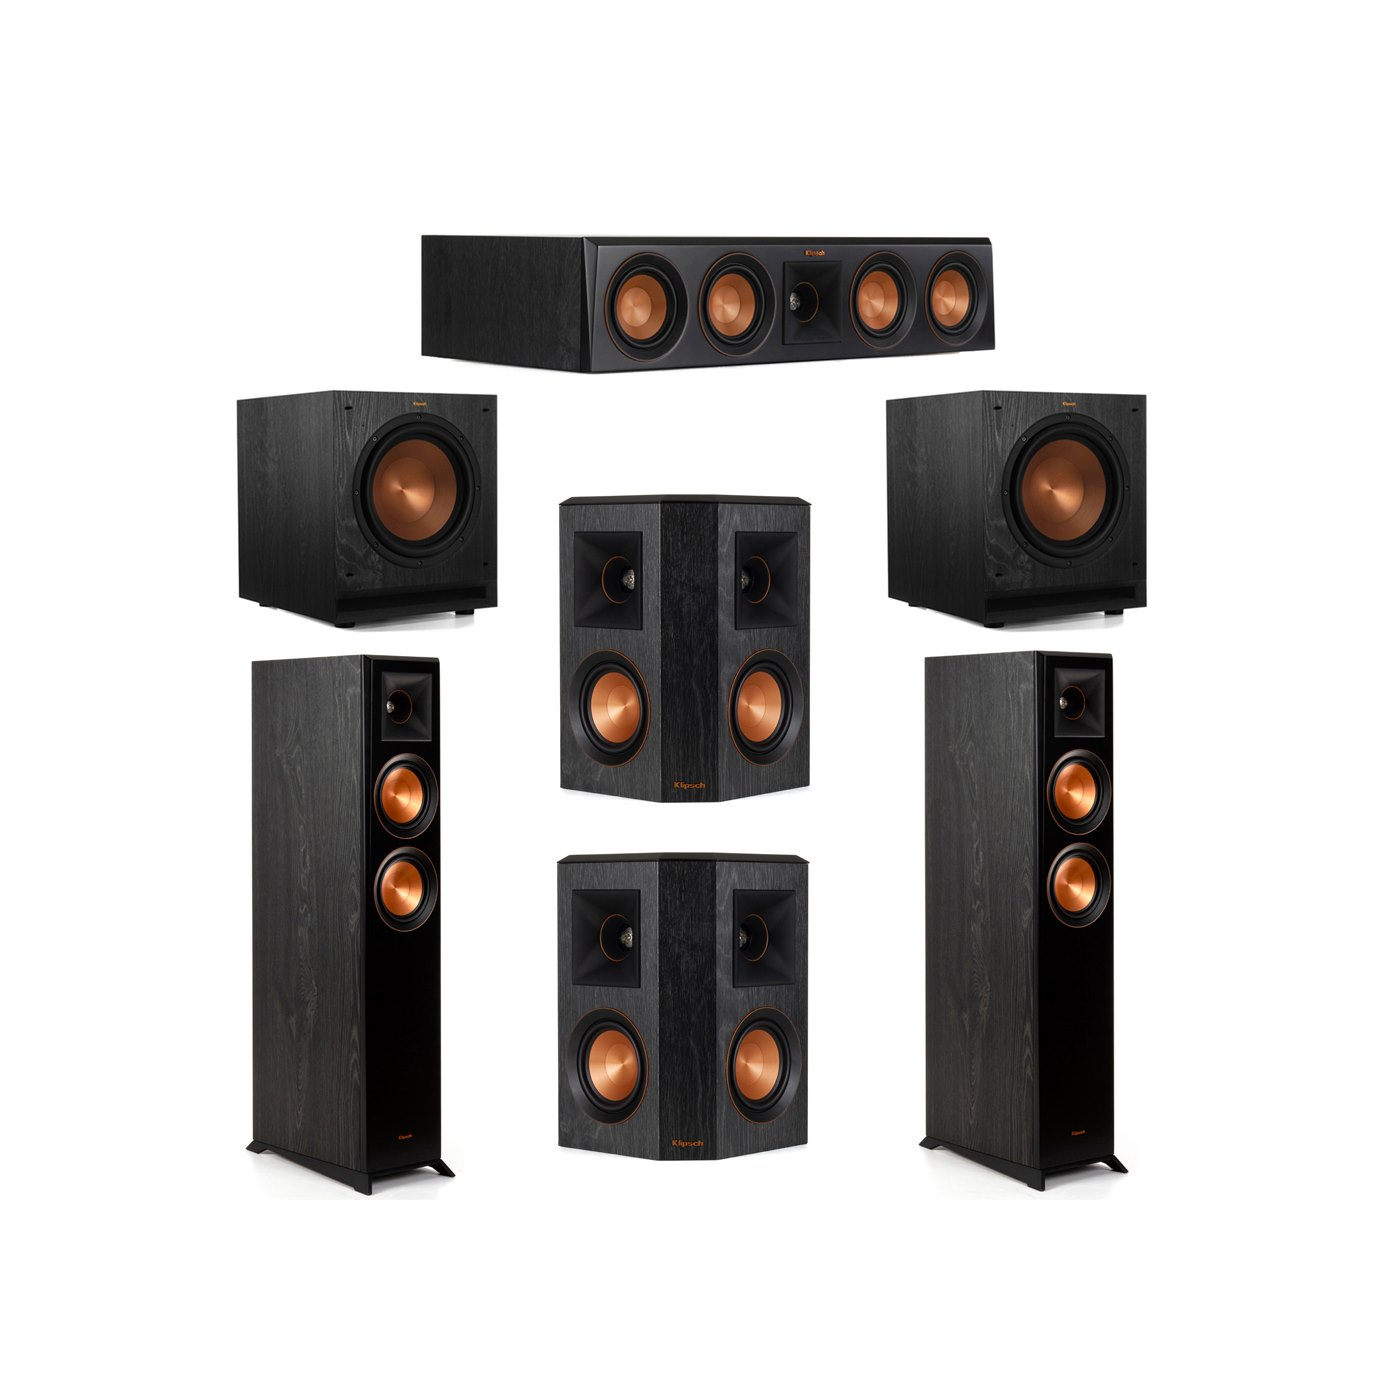 Klipsch 5.2 System with 2 RP-5000F Floorstanding Speakers, 1 Klipsch RP-404C Center Speaker, 2 Klipsch RP-402S Surround Speakers, 2 Klipsch SPL-100 Subwoofers